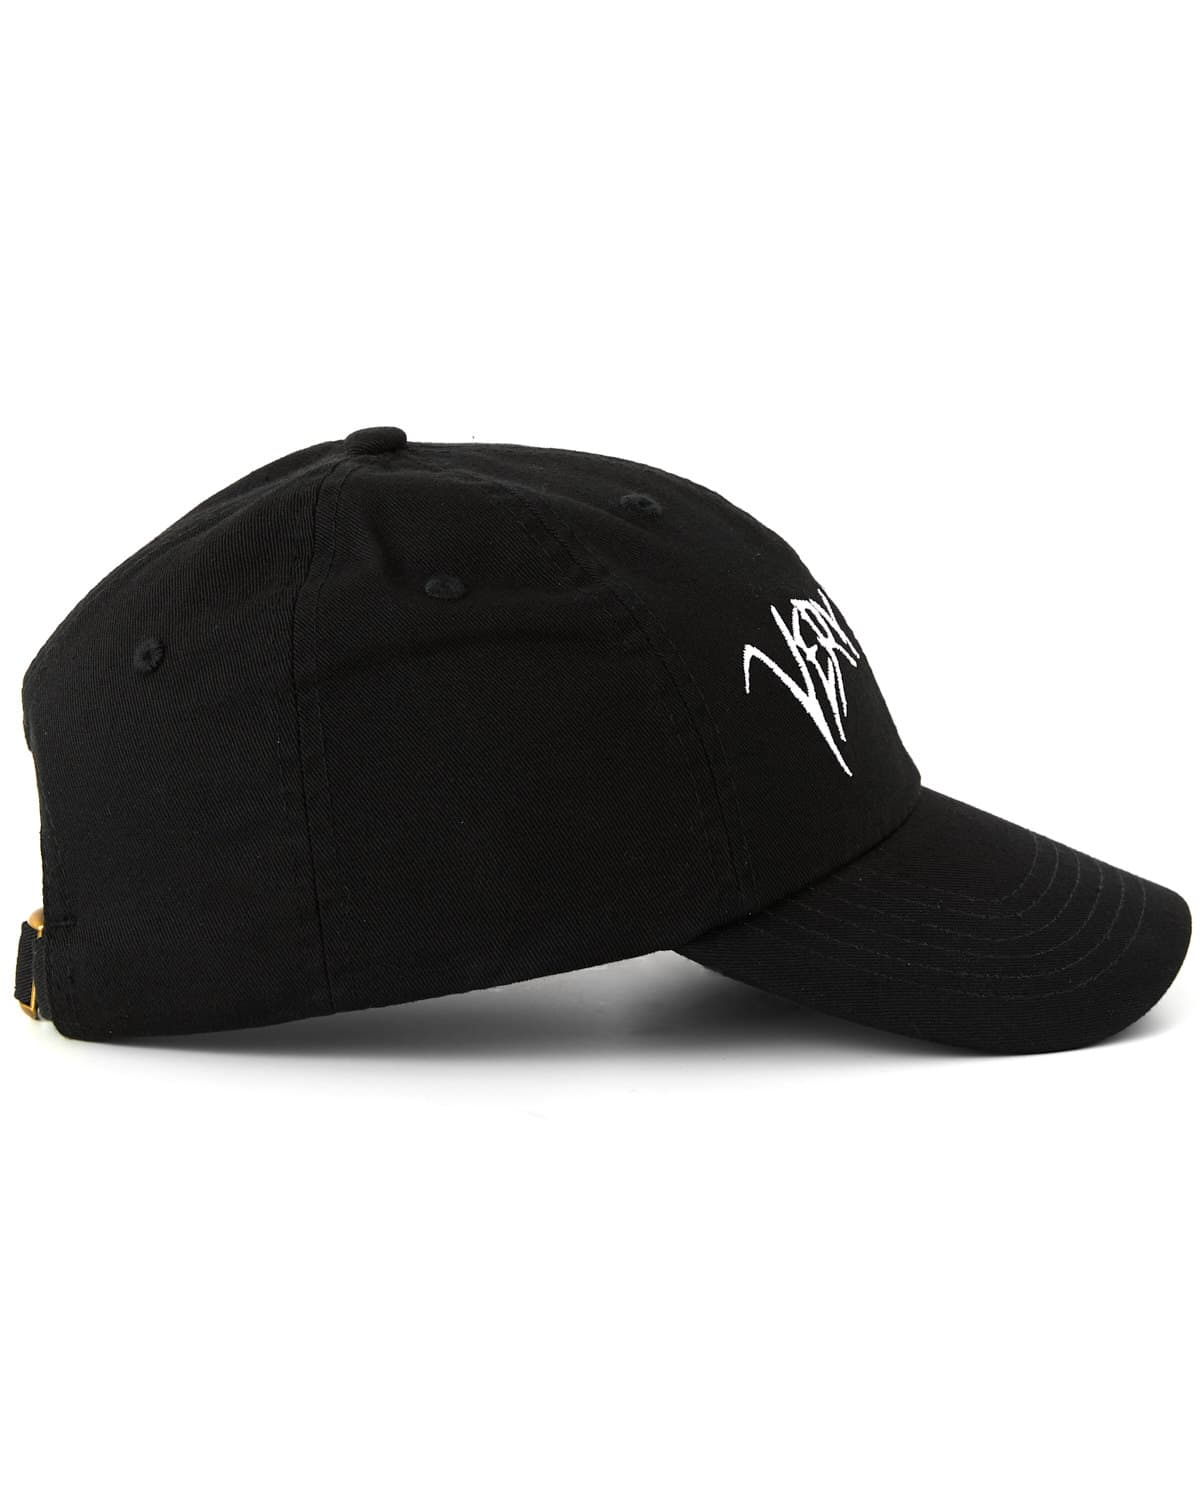 'Very Extra' Dad Hat